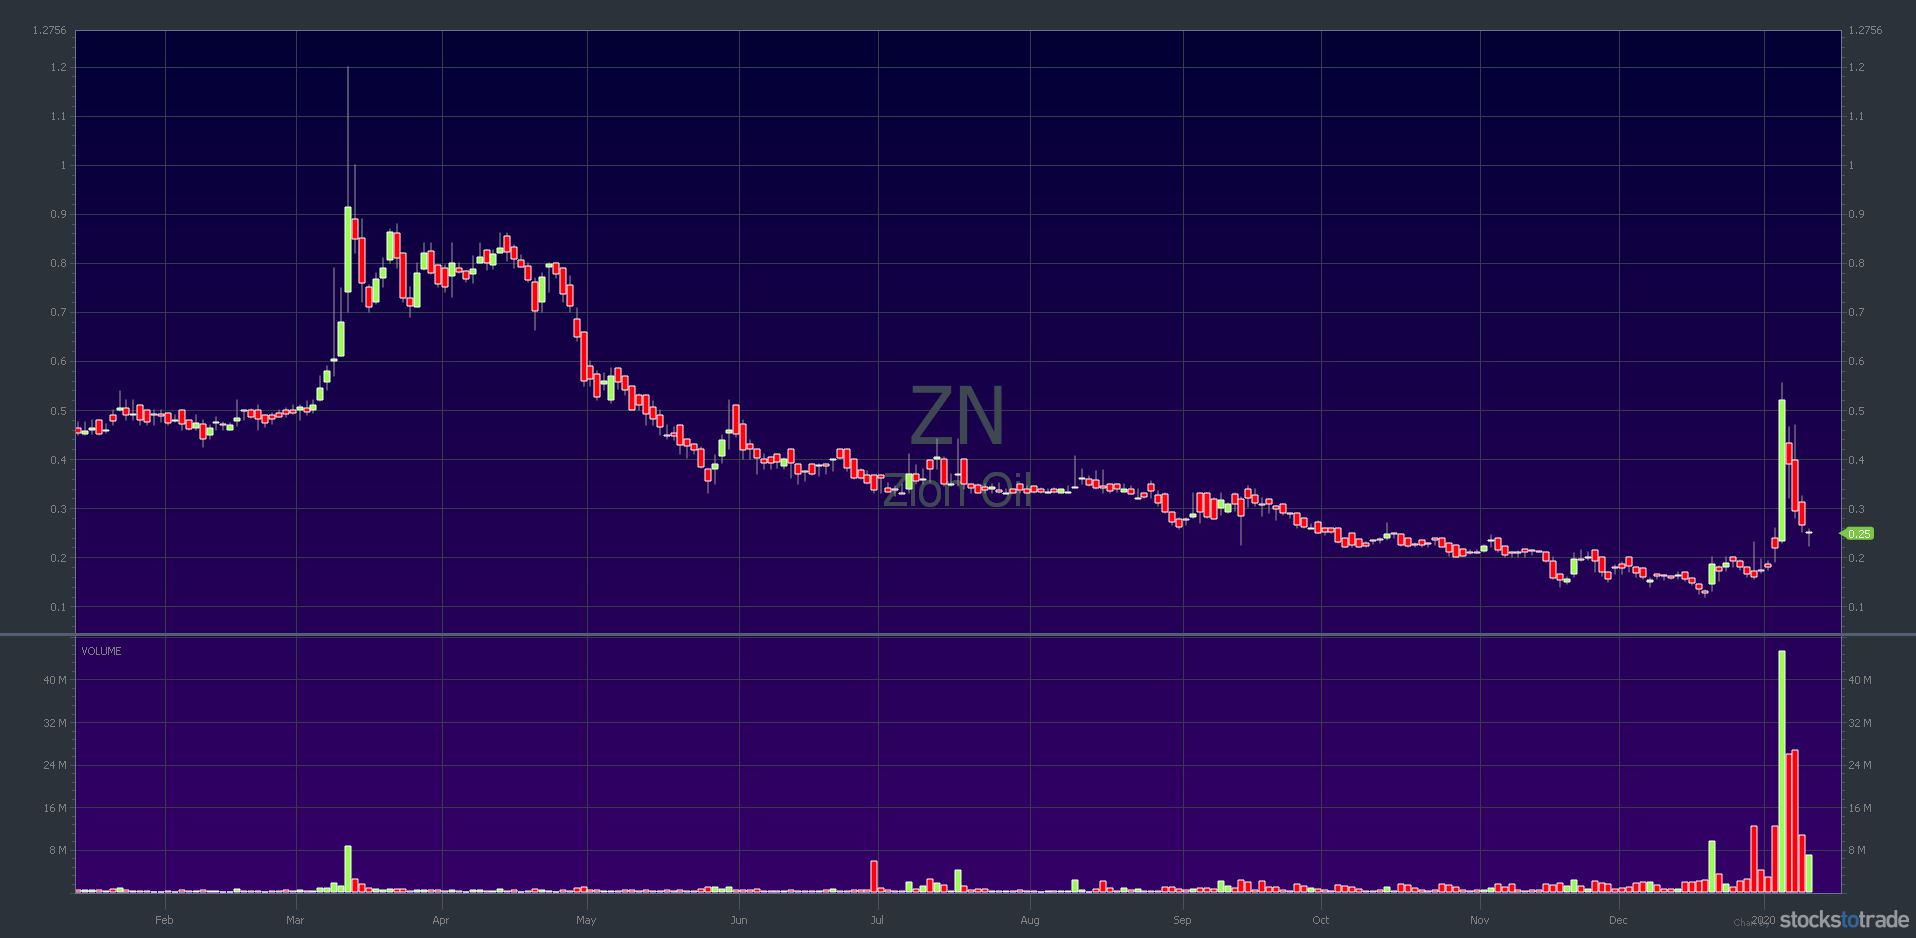 ZN stock chart